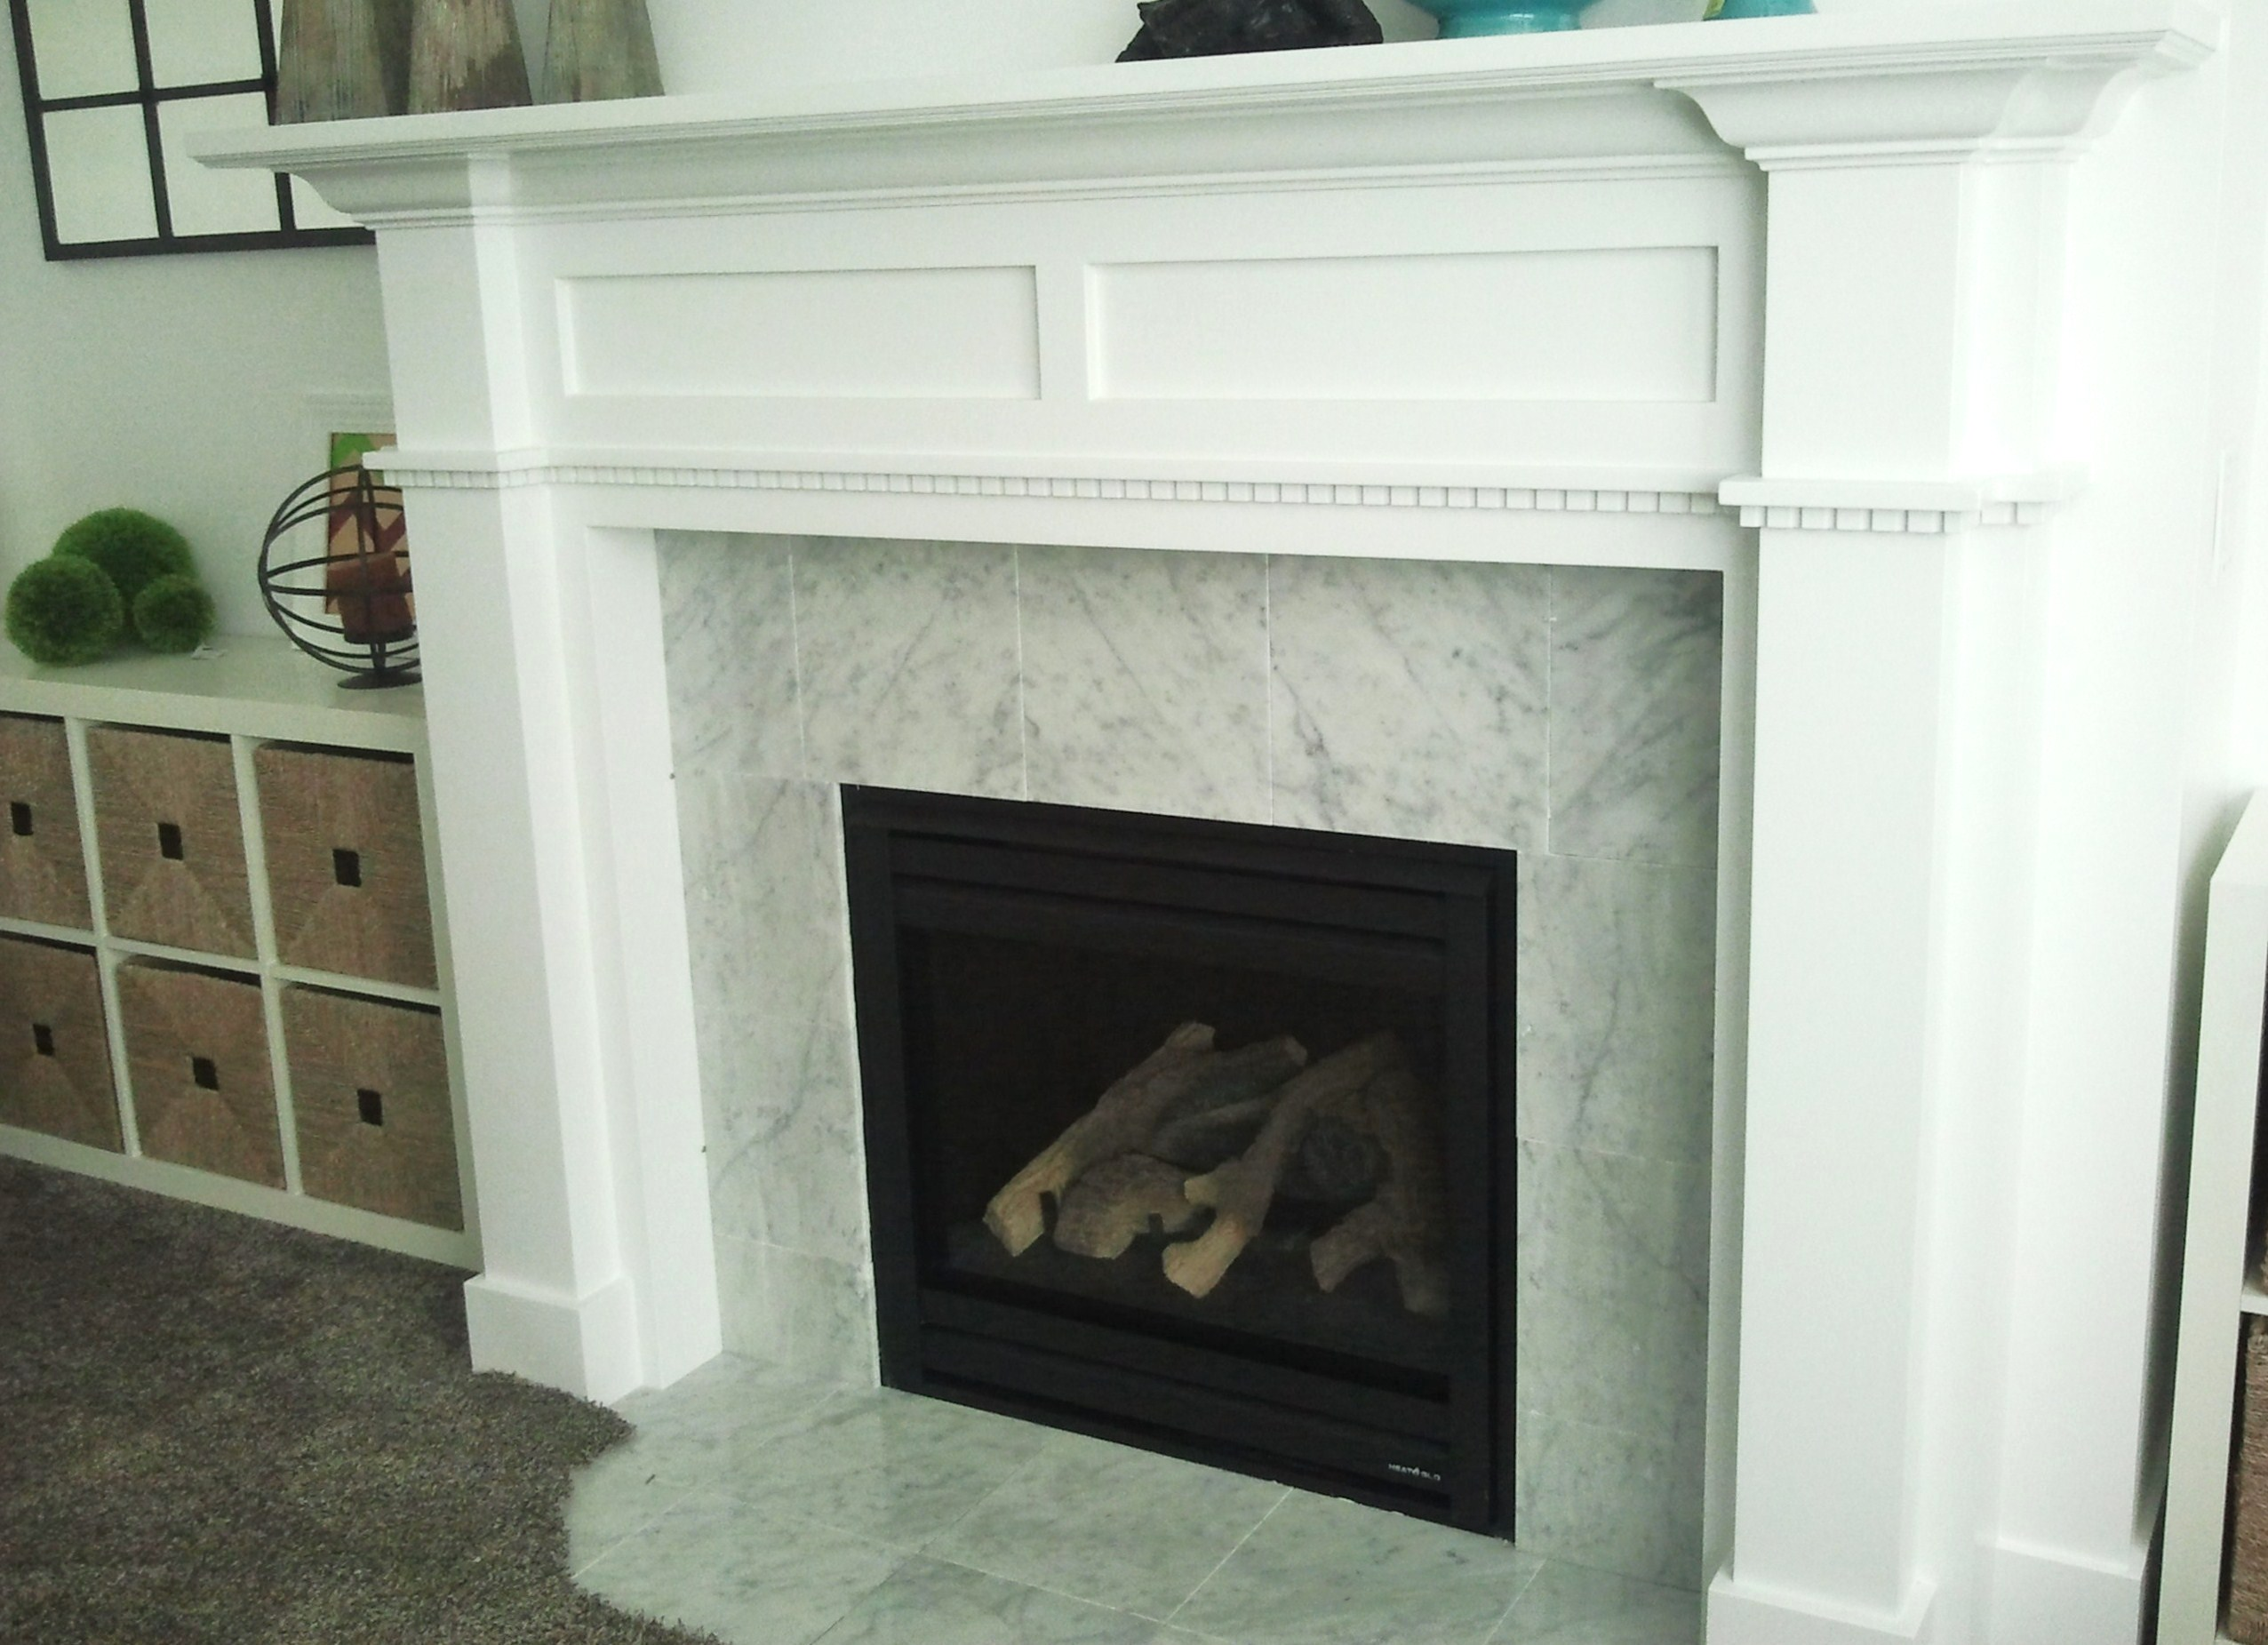 Diy fireplace mantel and surround fireplace design ideas for Fire place mantel ideas